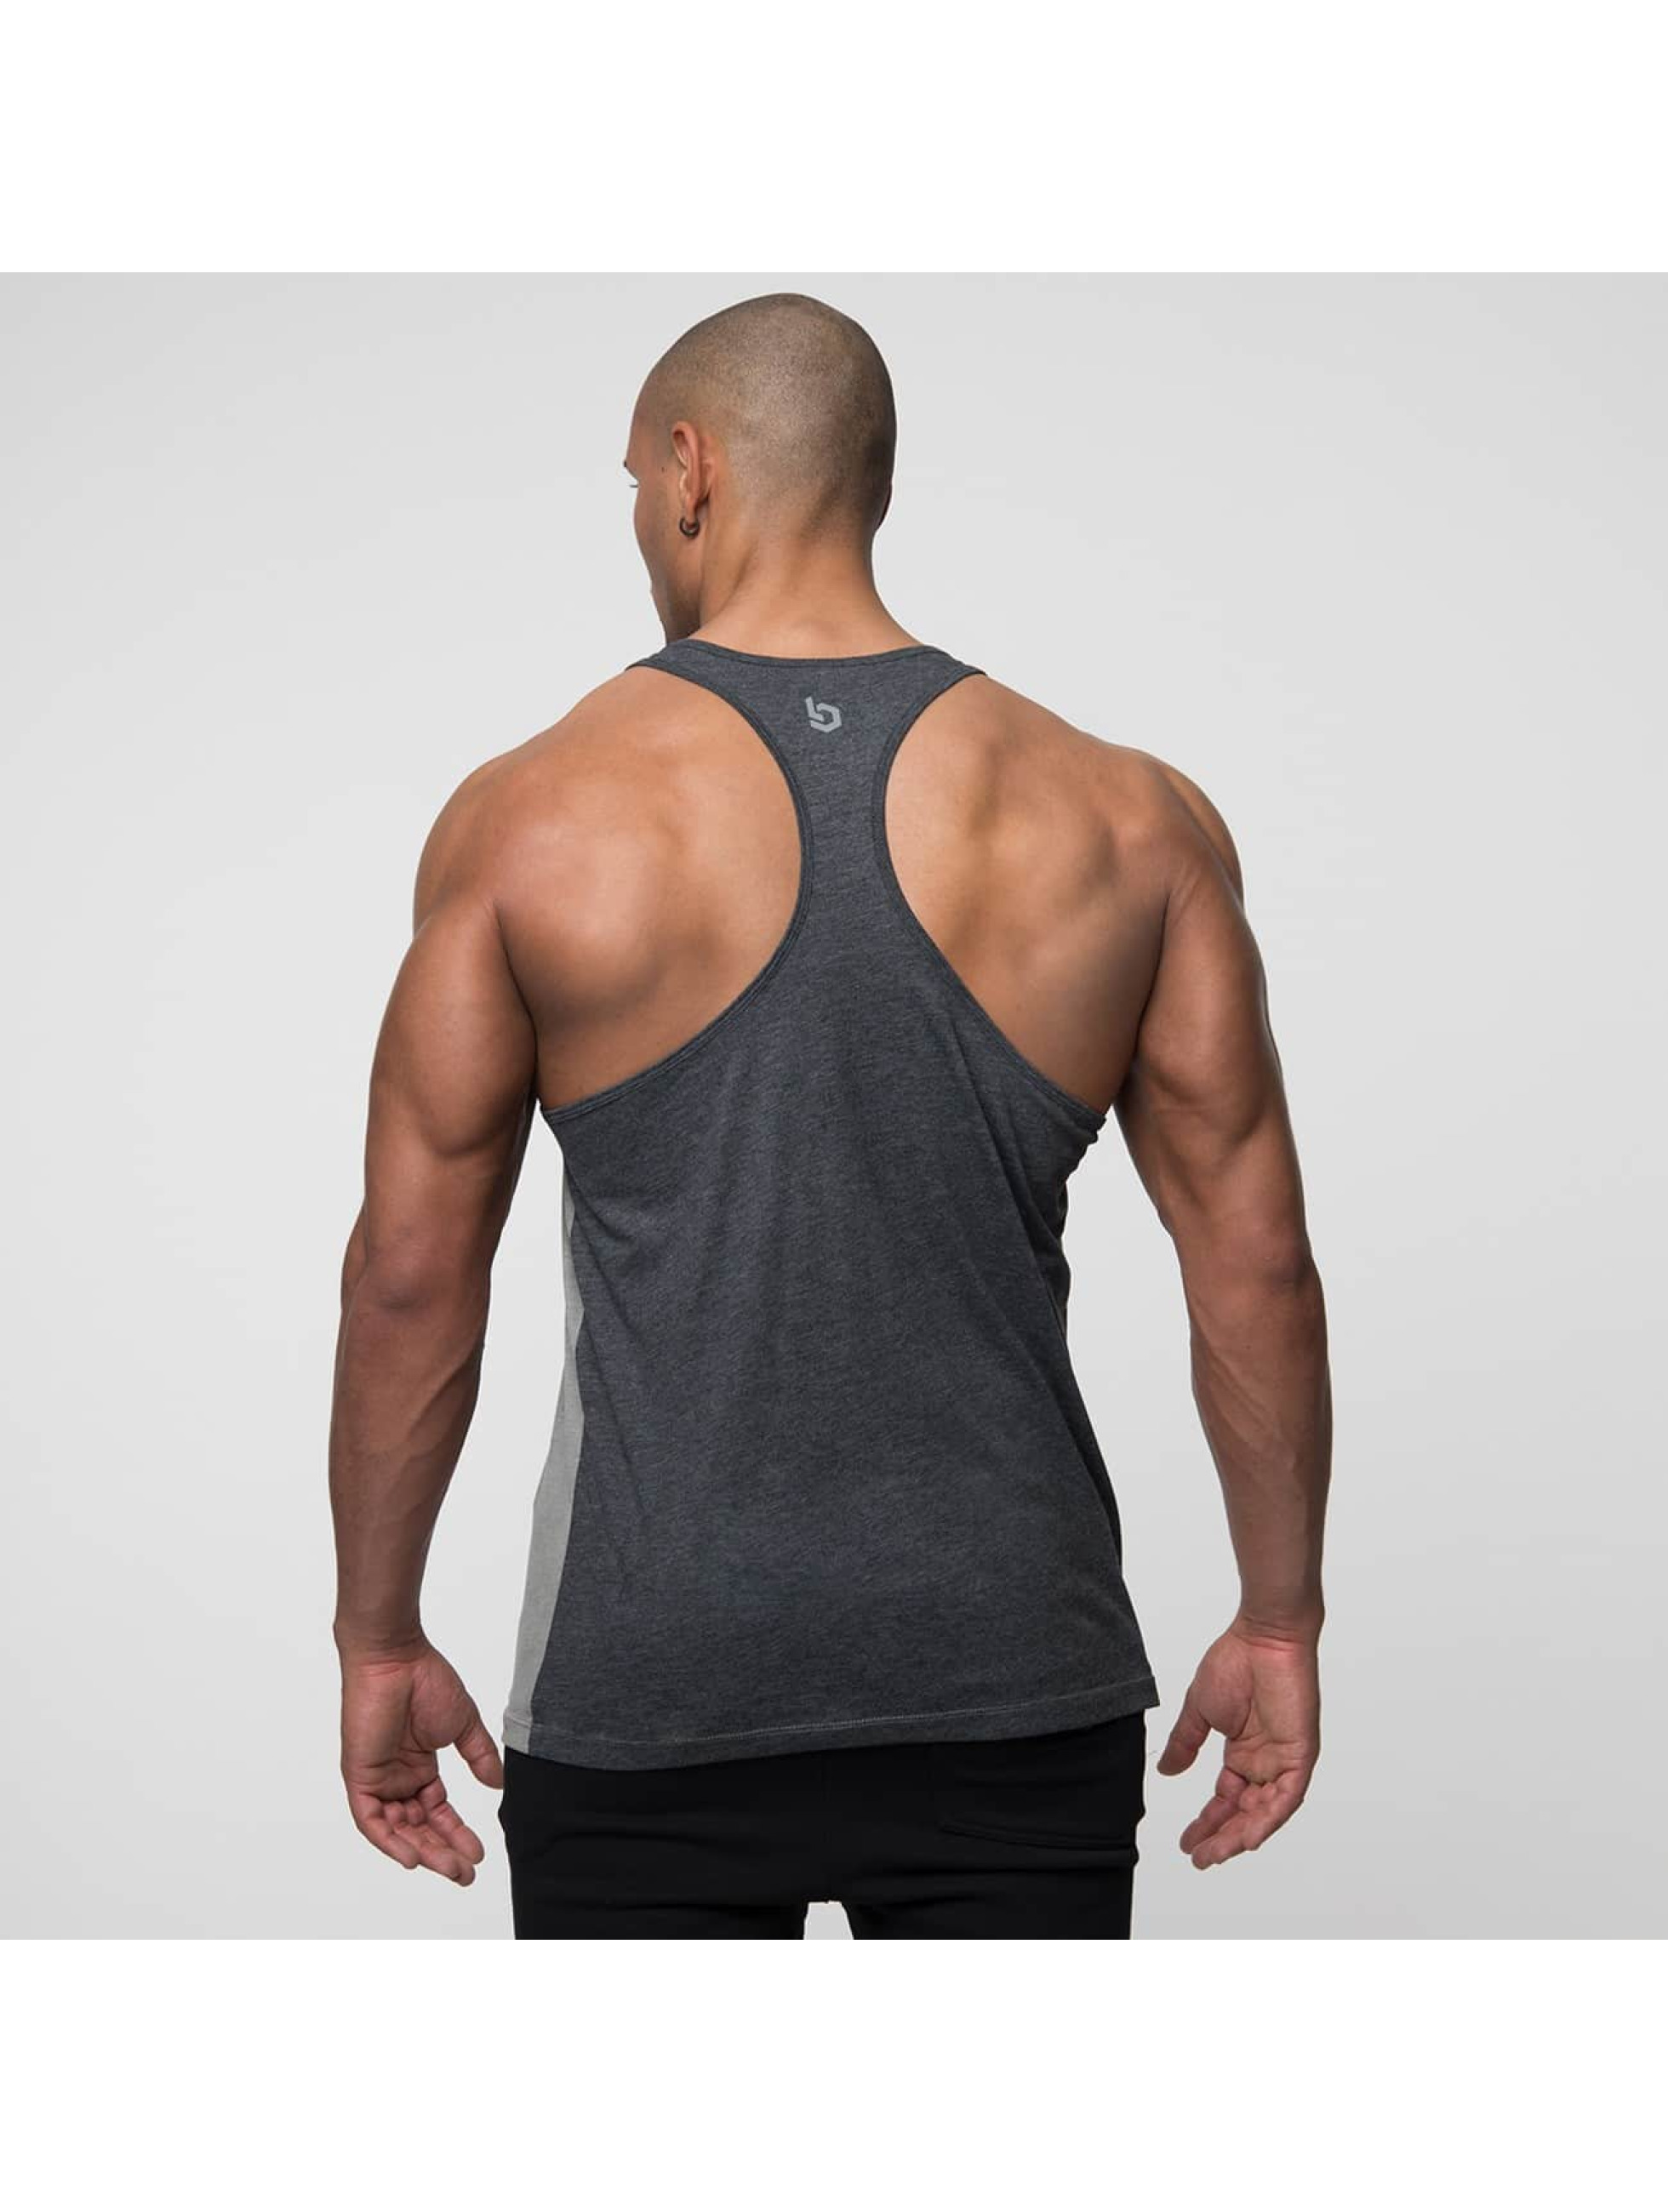 Beyond Limits Tank Tops Selected Stringer harmaa